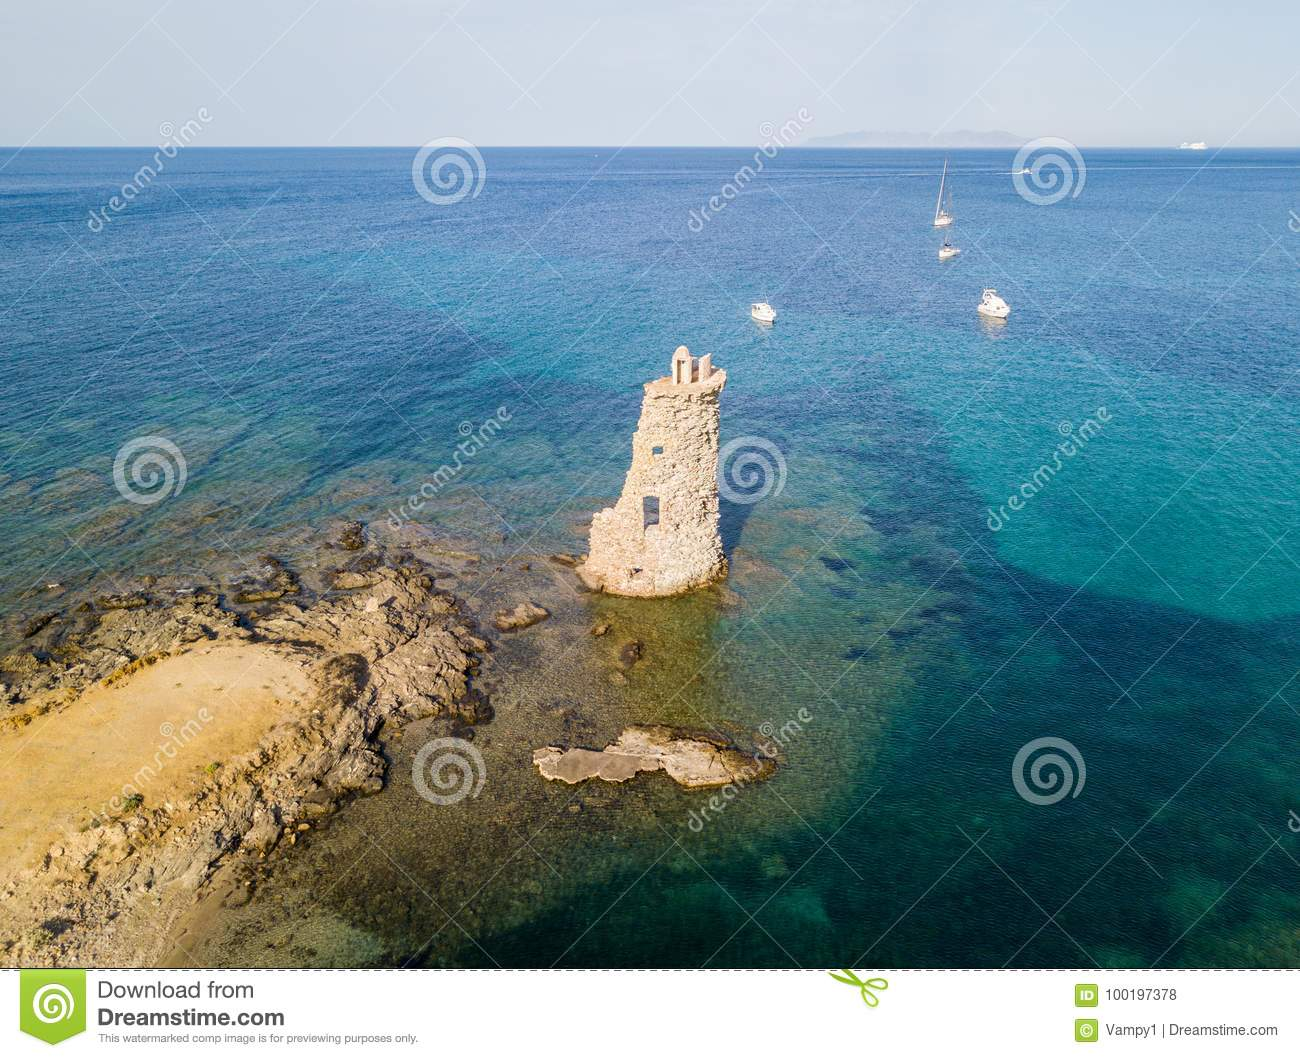 Aerial View of the Genovese Tower, Tour Genoise, Cap Corse Peninsula, Corsica. Coastline. France